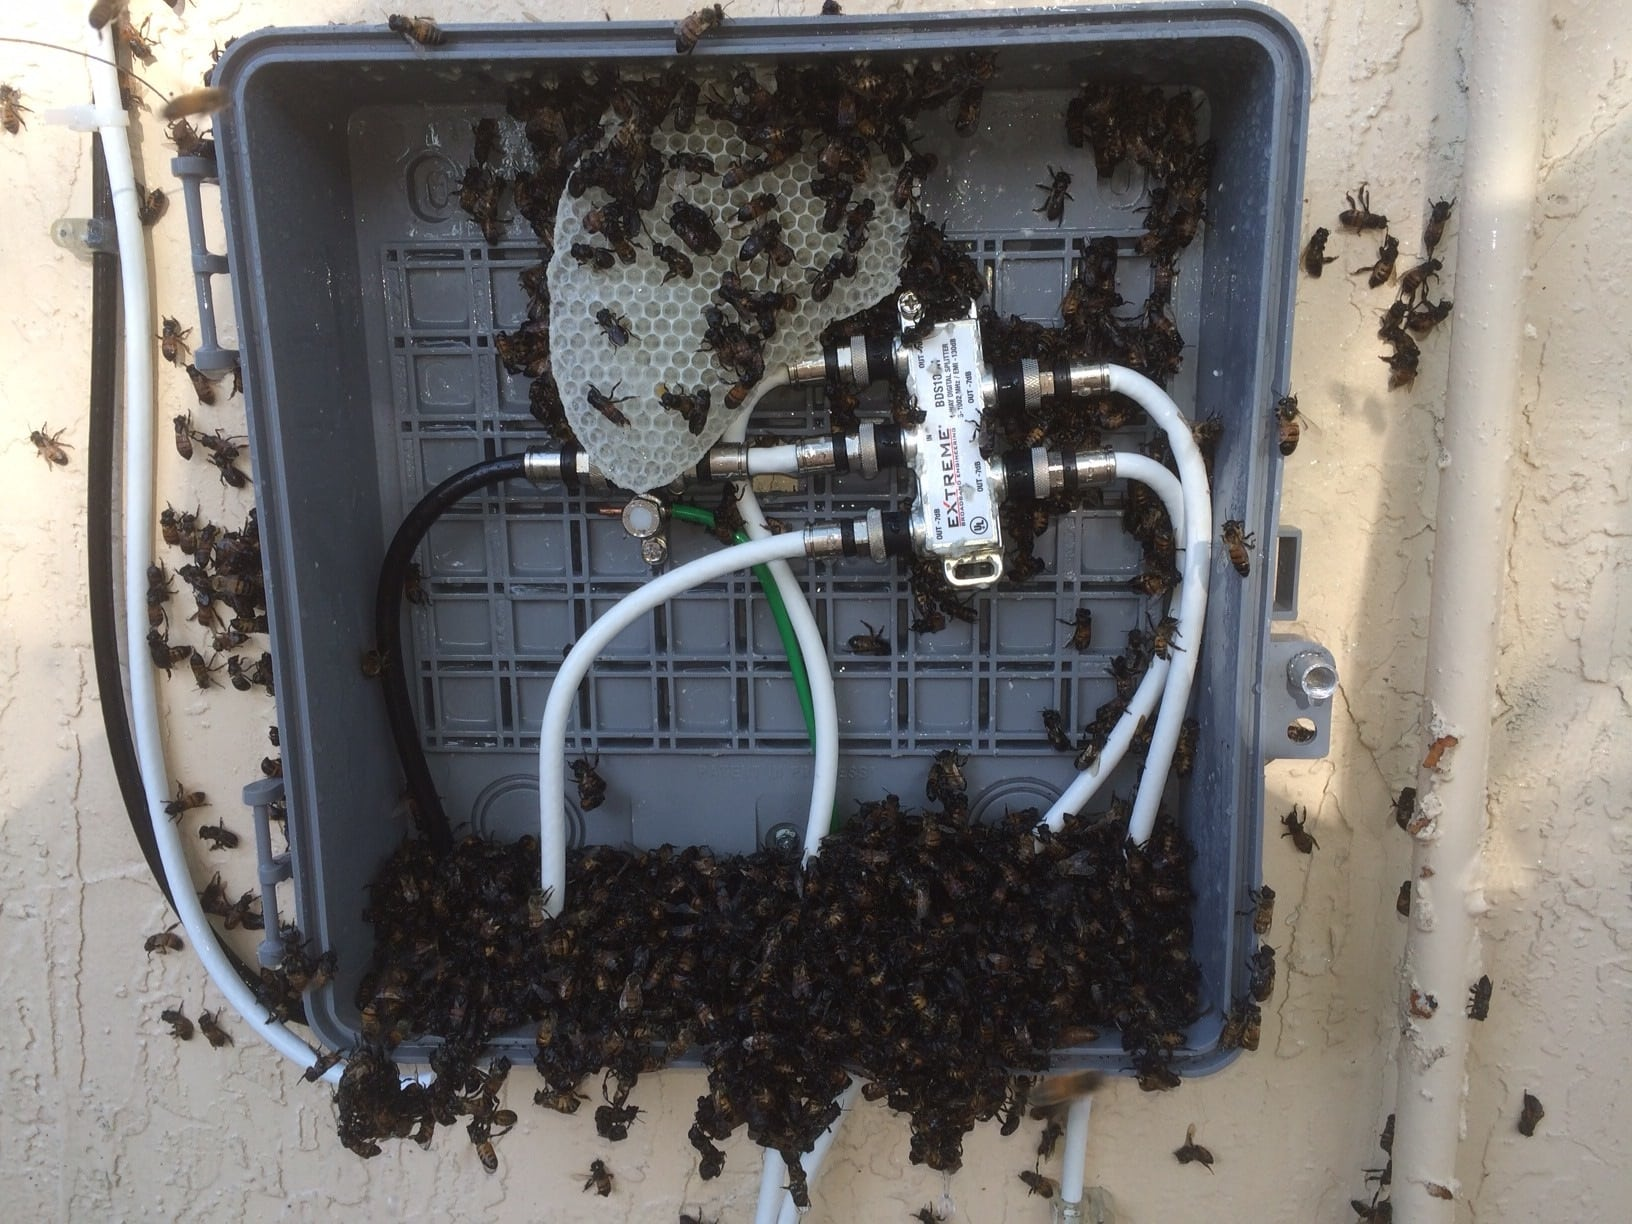 bees inside a cable box miami bee removal corp 786. Black Bedroom Furniture Sets. Home Design Ideas